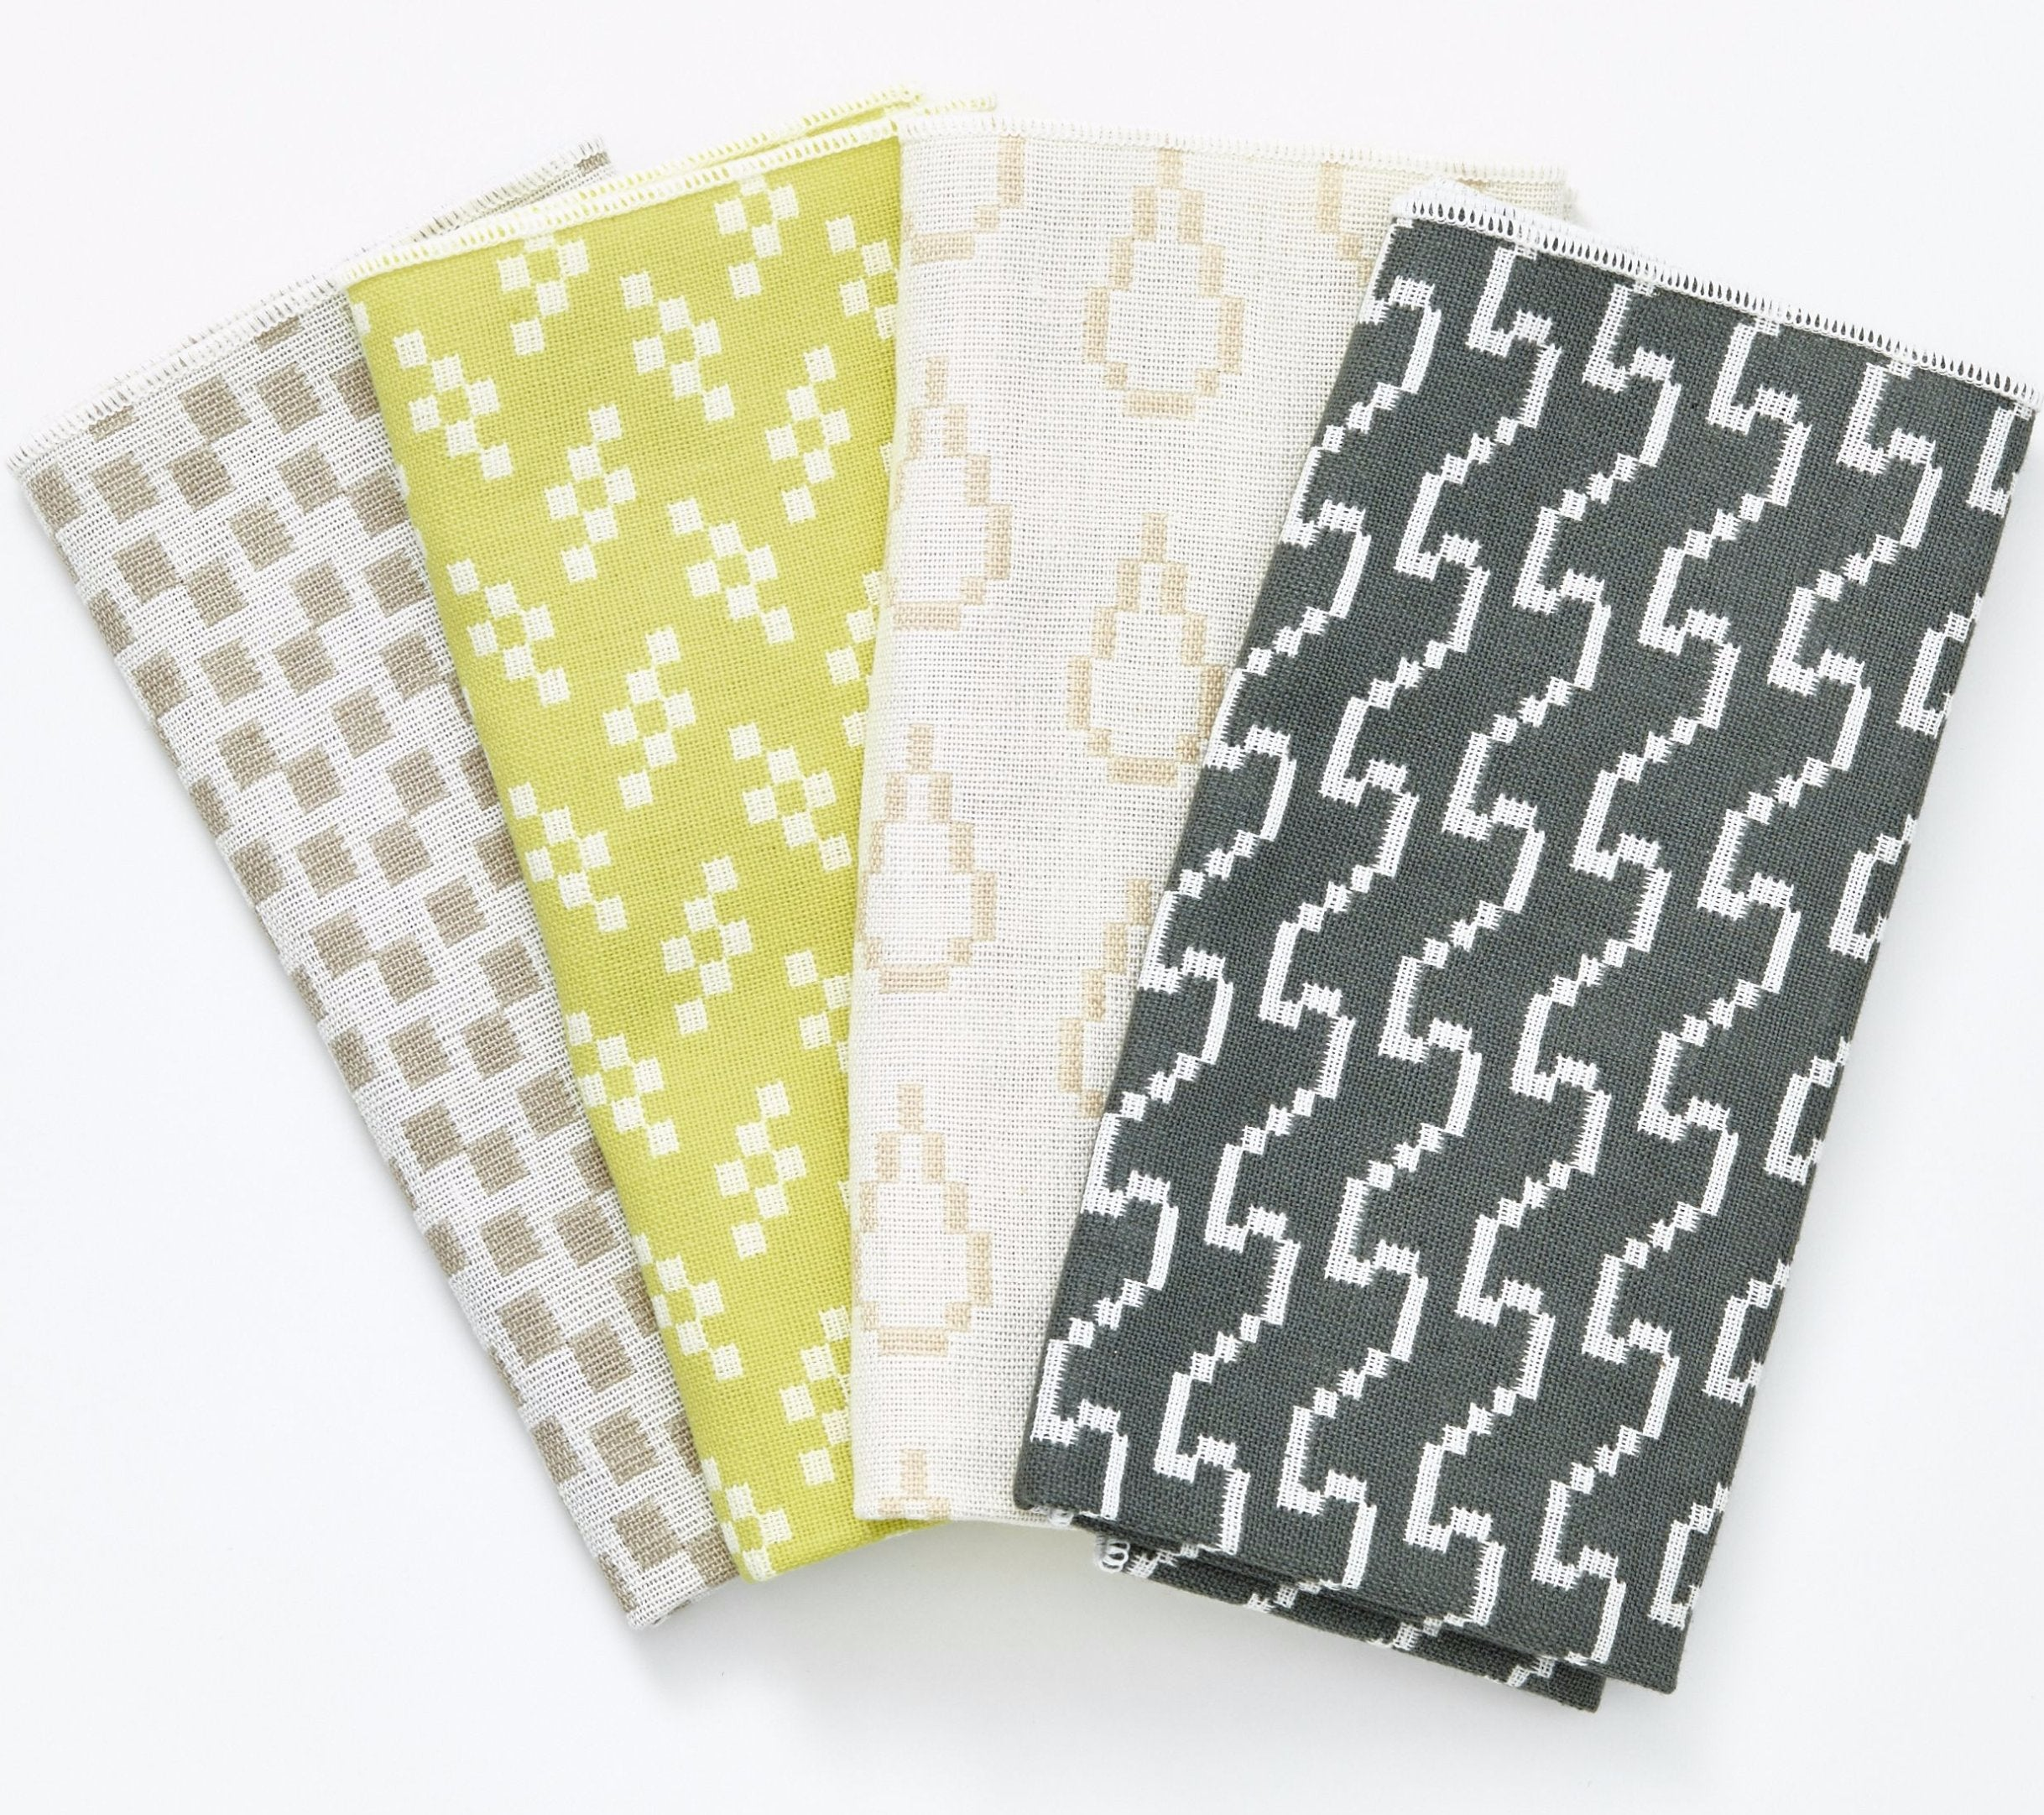 Set of 4 Bitmap Textiles Napkins in Various Colors design by Areaware